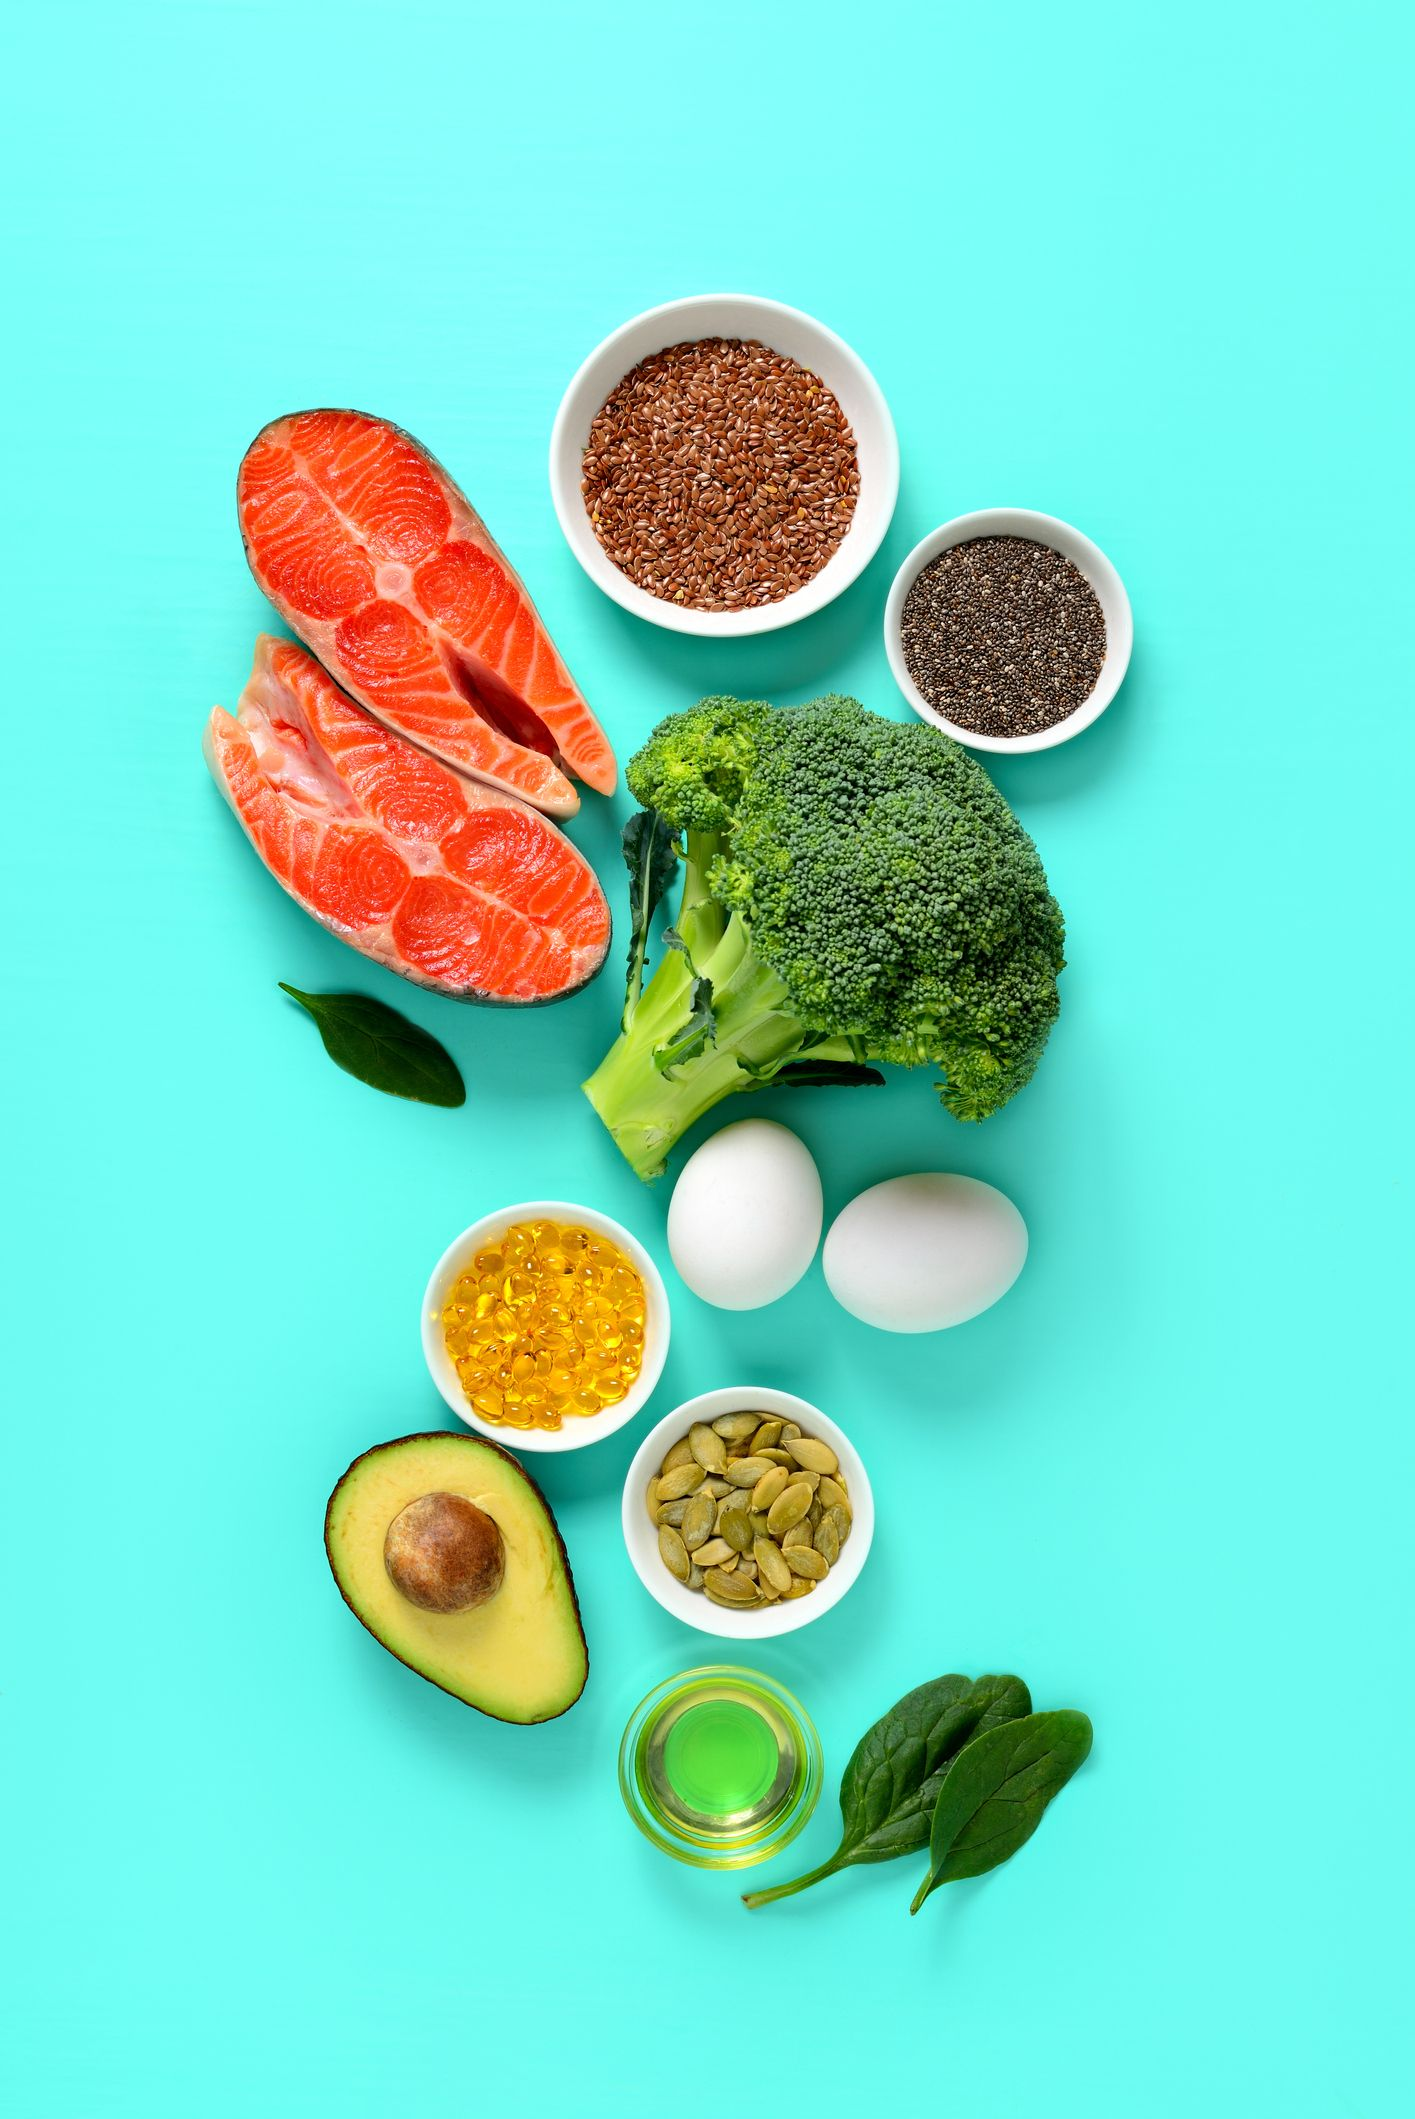 eczema and high protein diet